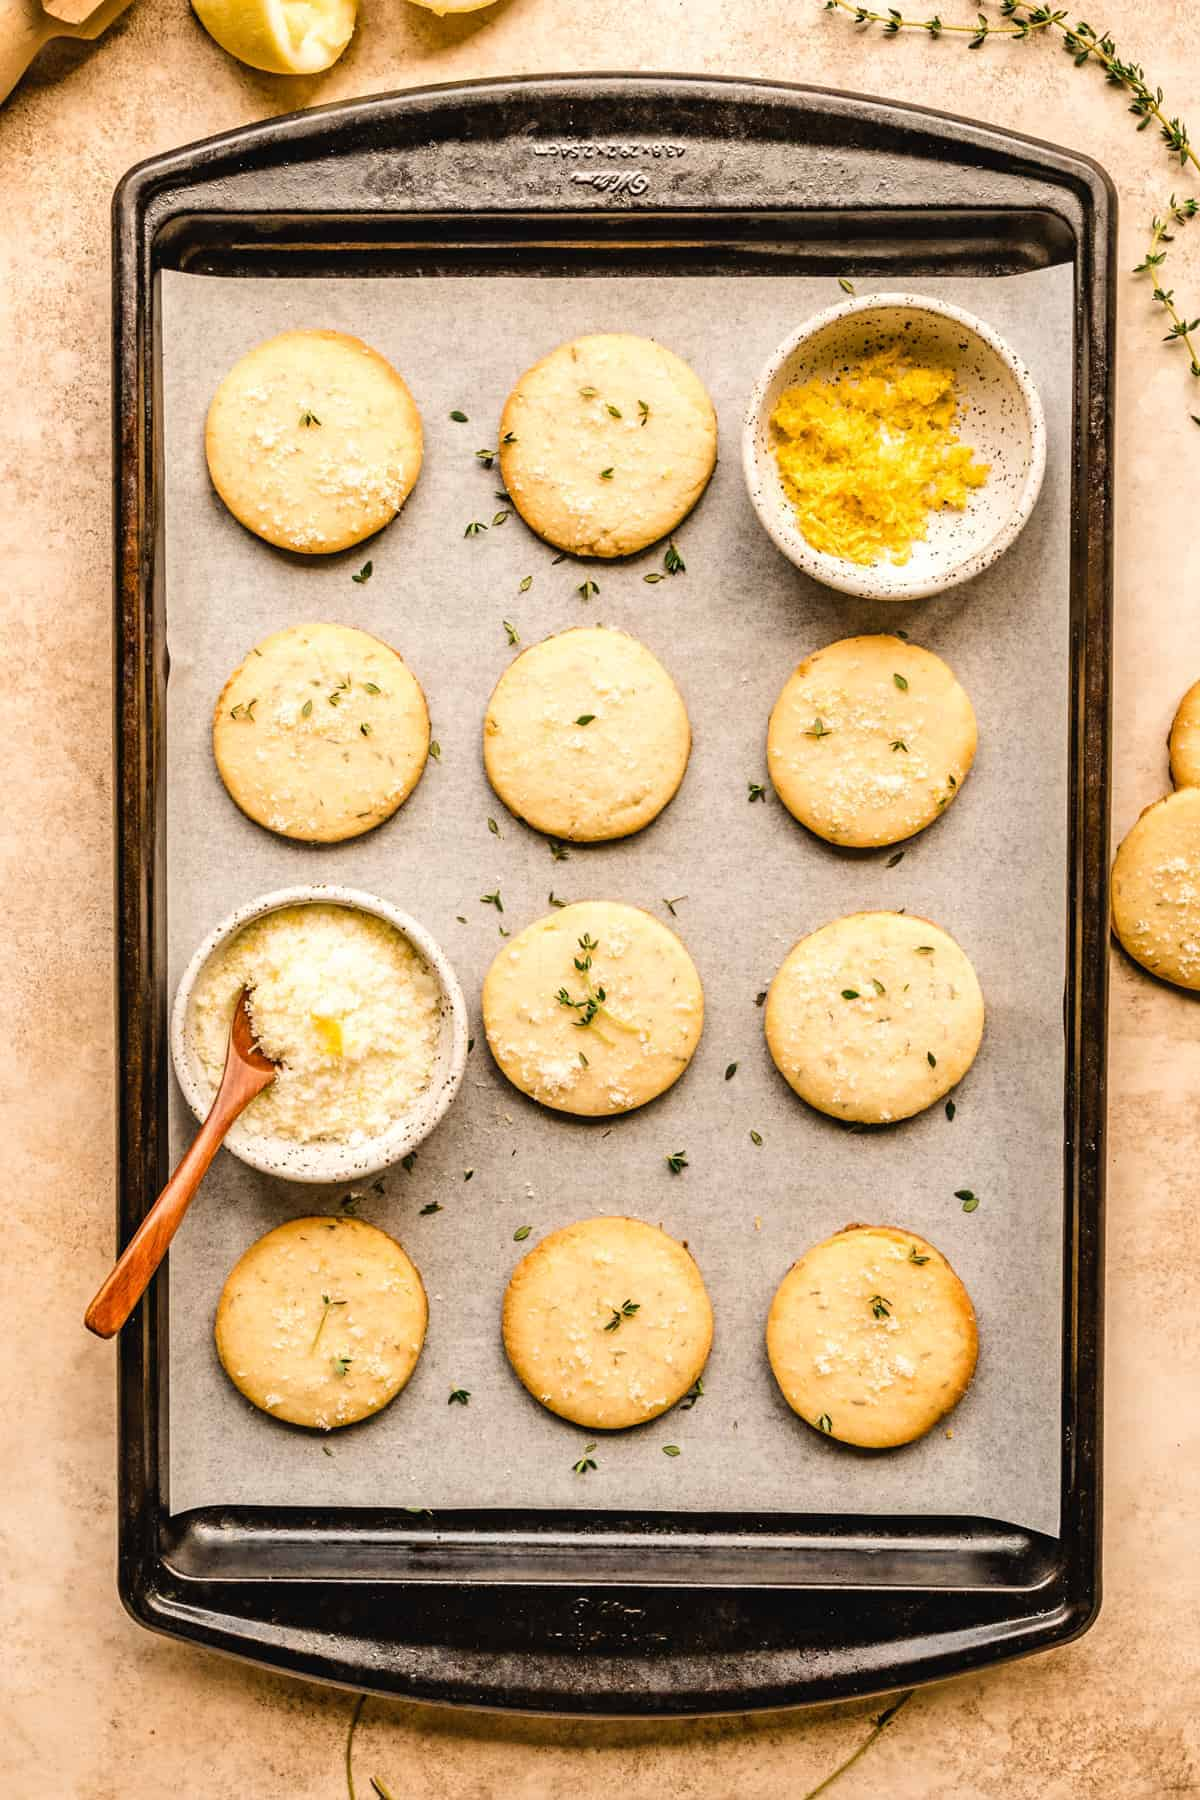 On a cookie sheet or plate, you'll enjoy these delicious lemon thyme shortbread cookies.